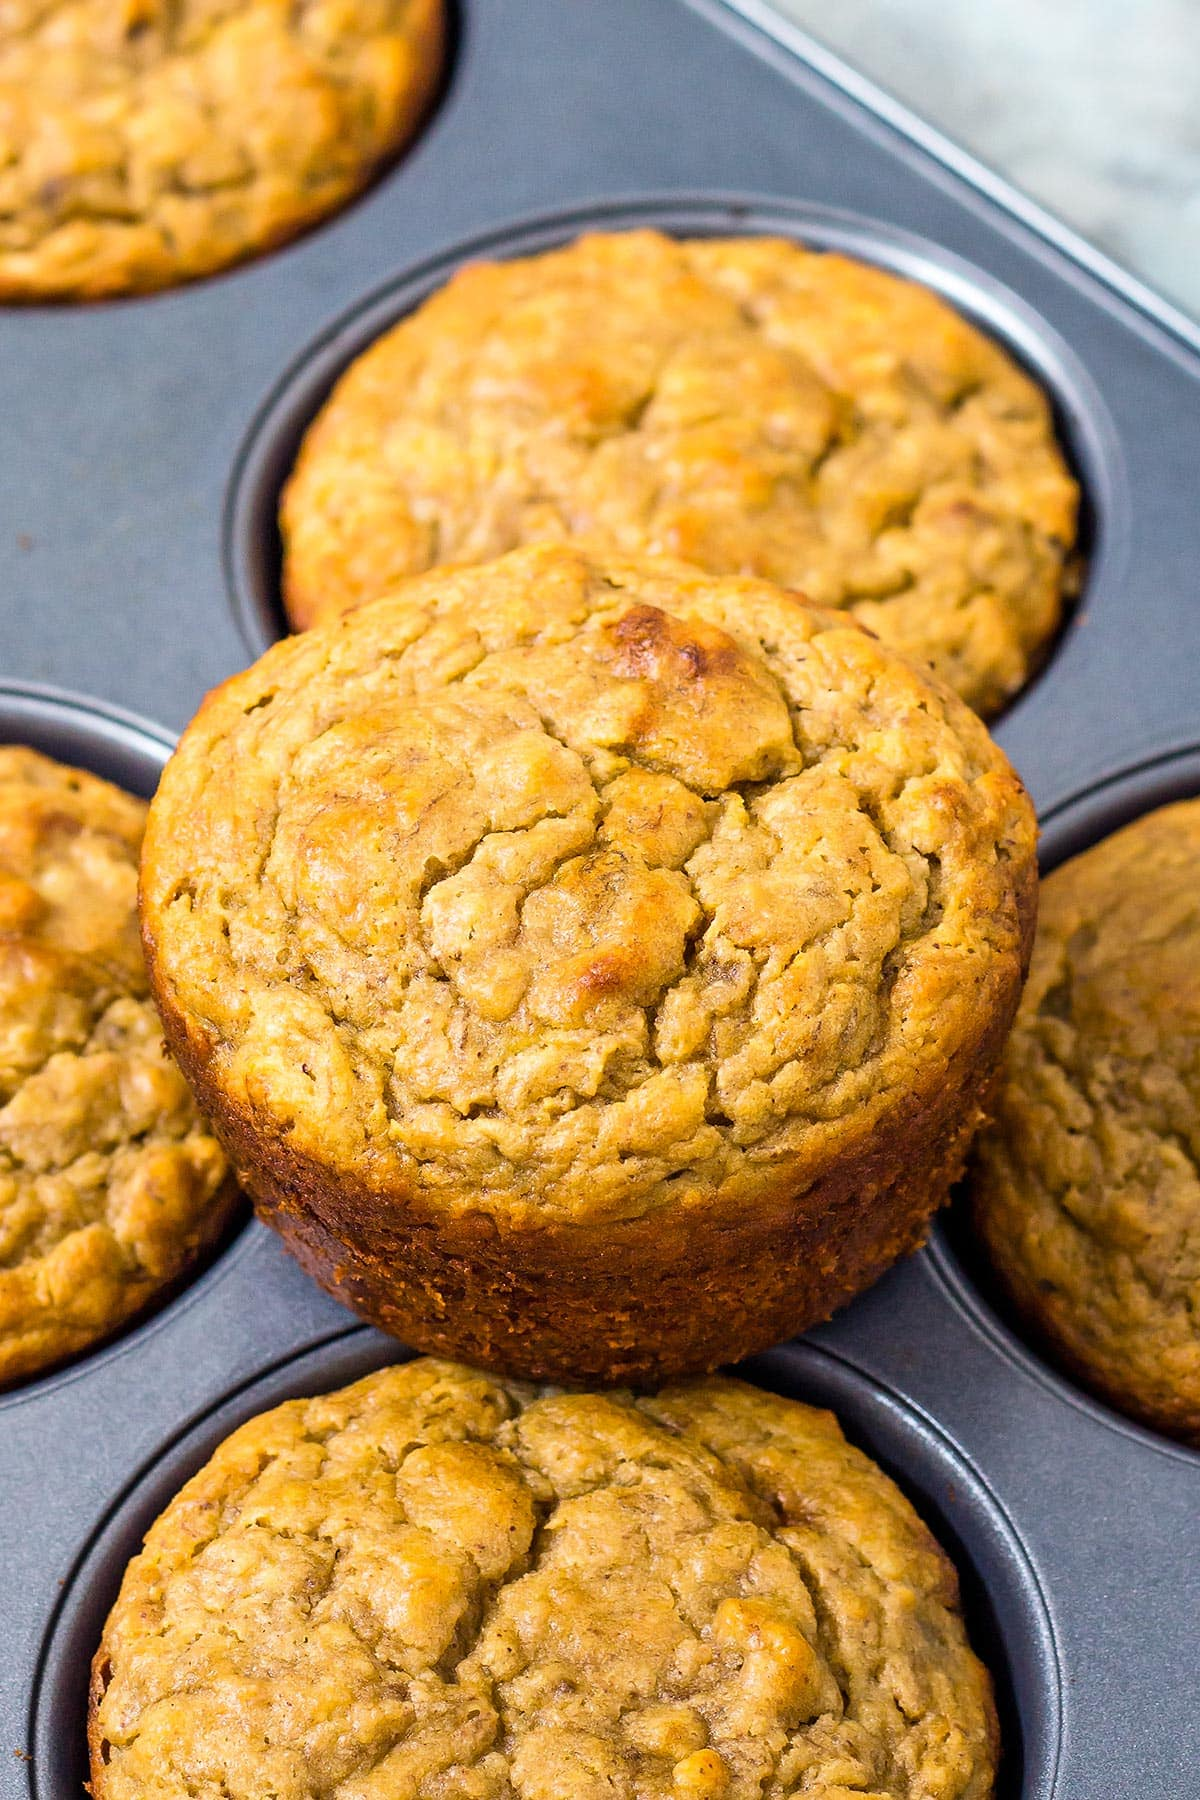 Healthy Banana and Peanut Butter Muffins